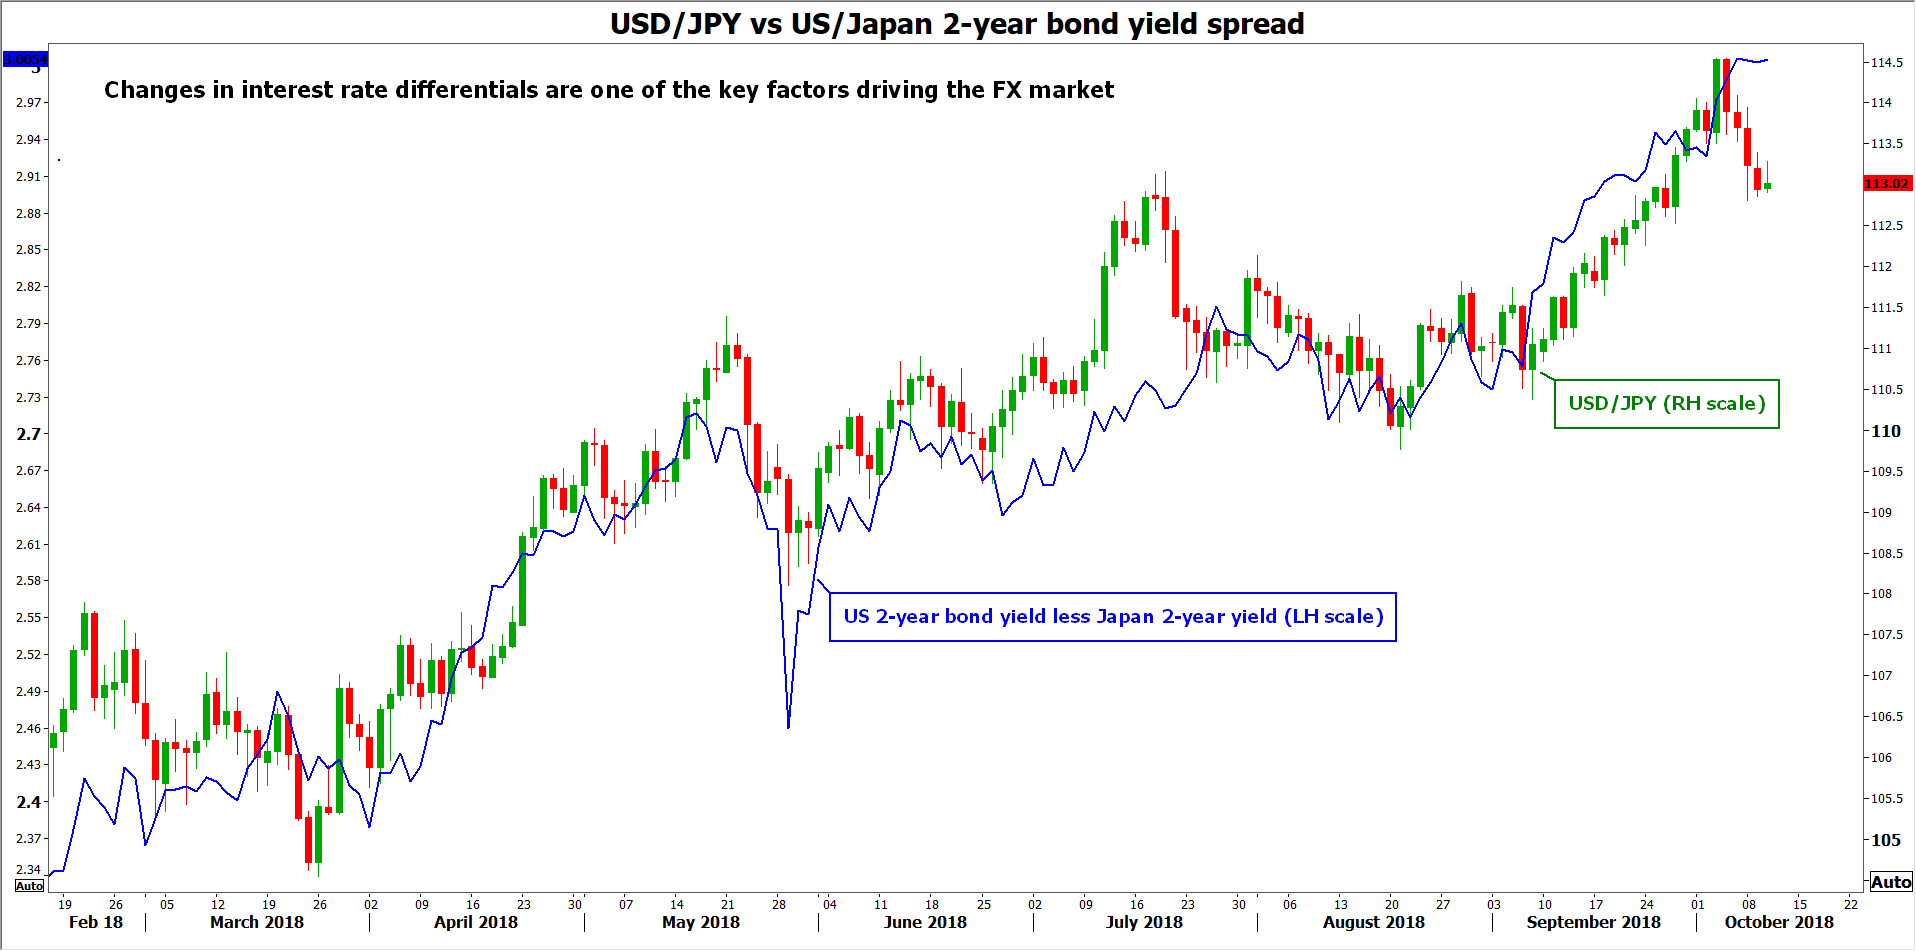 usd/jpy vs yields | EconAlerts